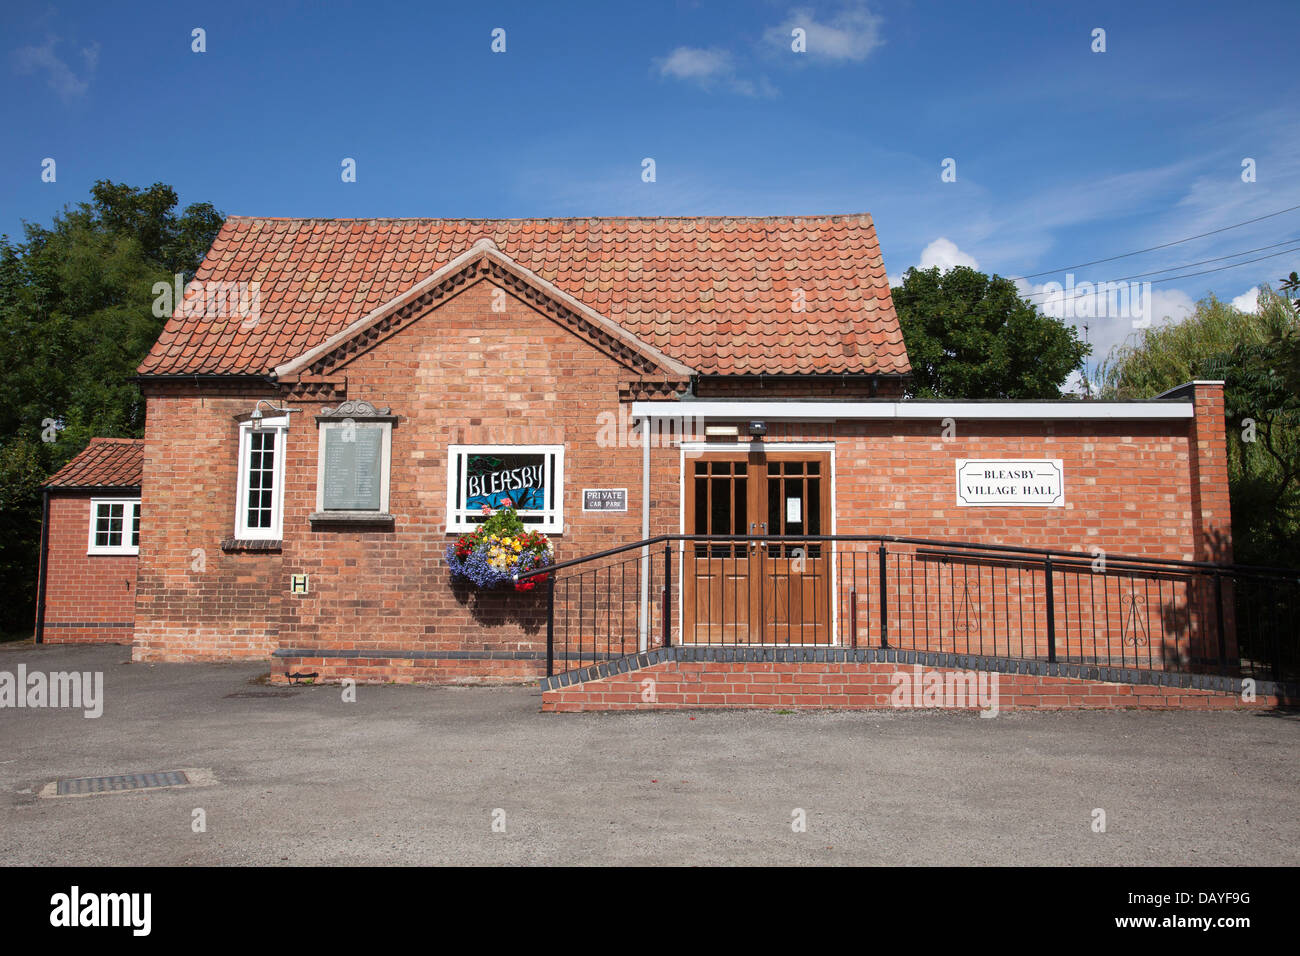 The village hall at Bleasby, Nottinghamshire, England, U.K. - Stock Image